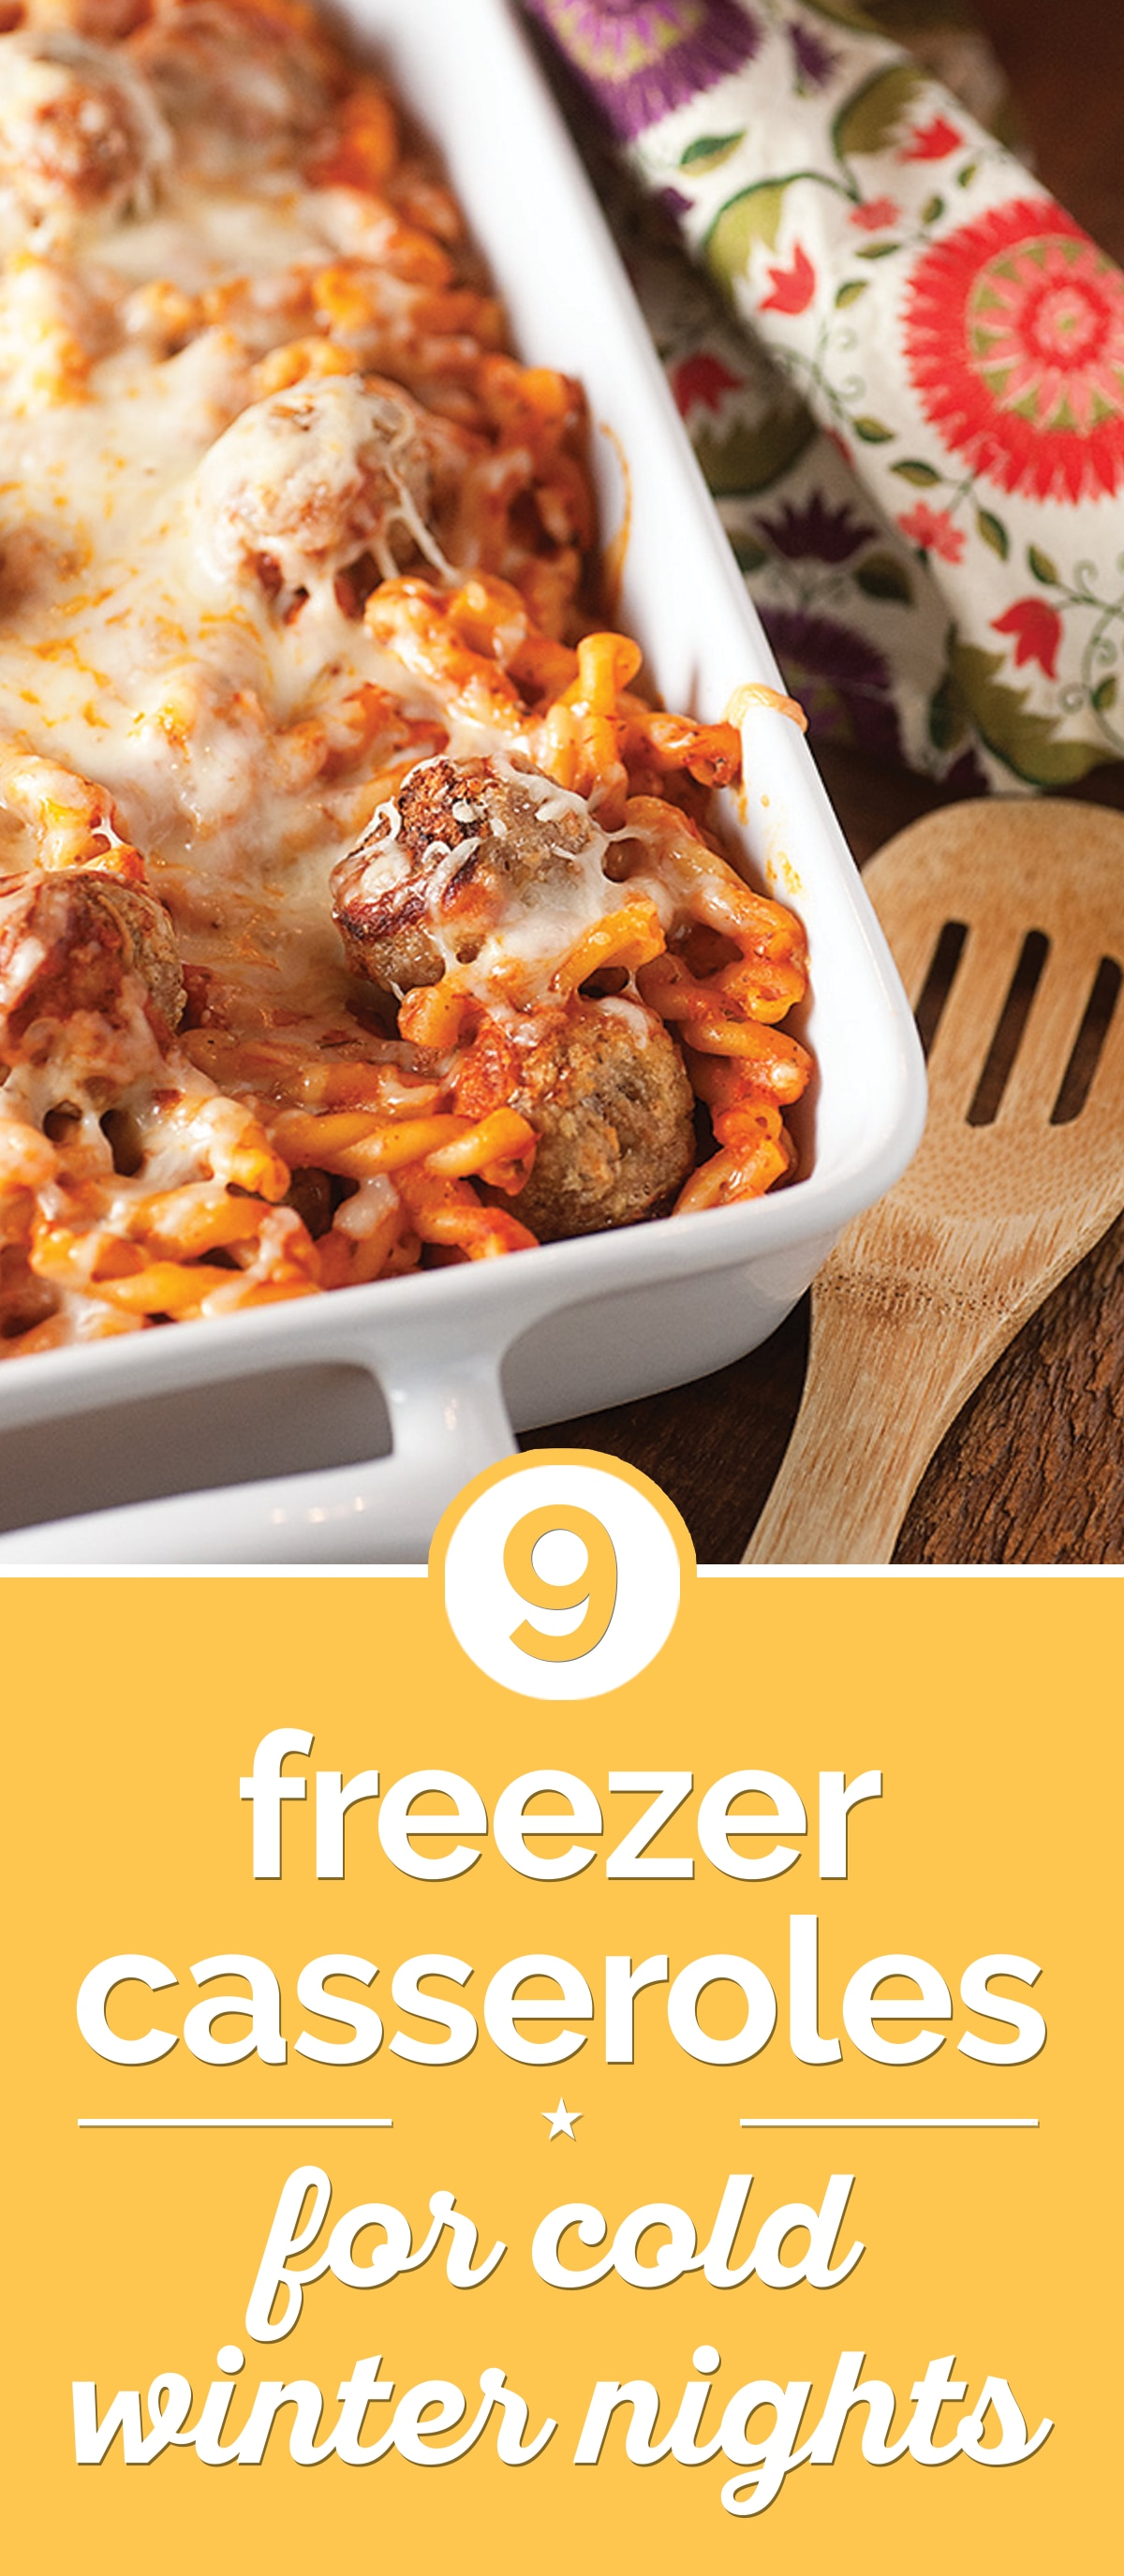 9 Freezer Casseroles for Cold Winter Nights | thegoodstuff